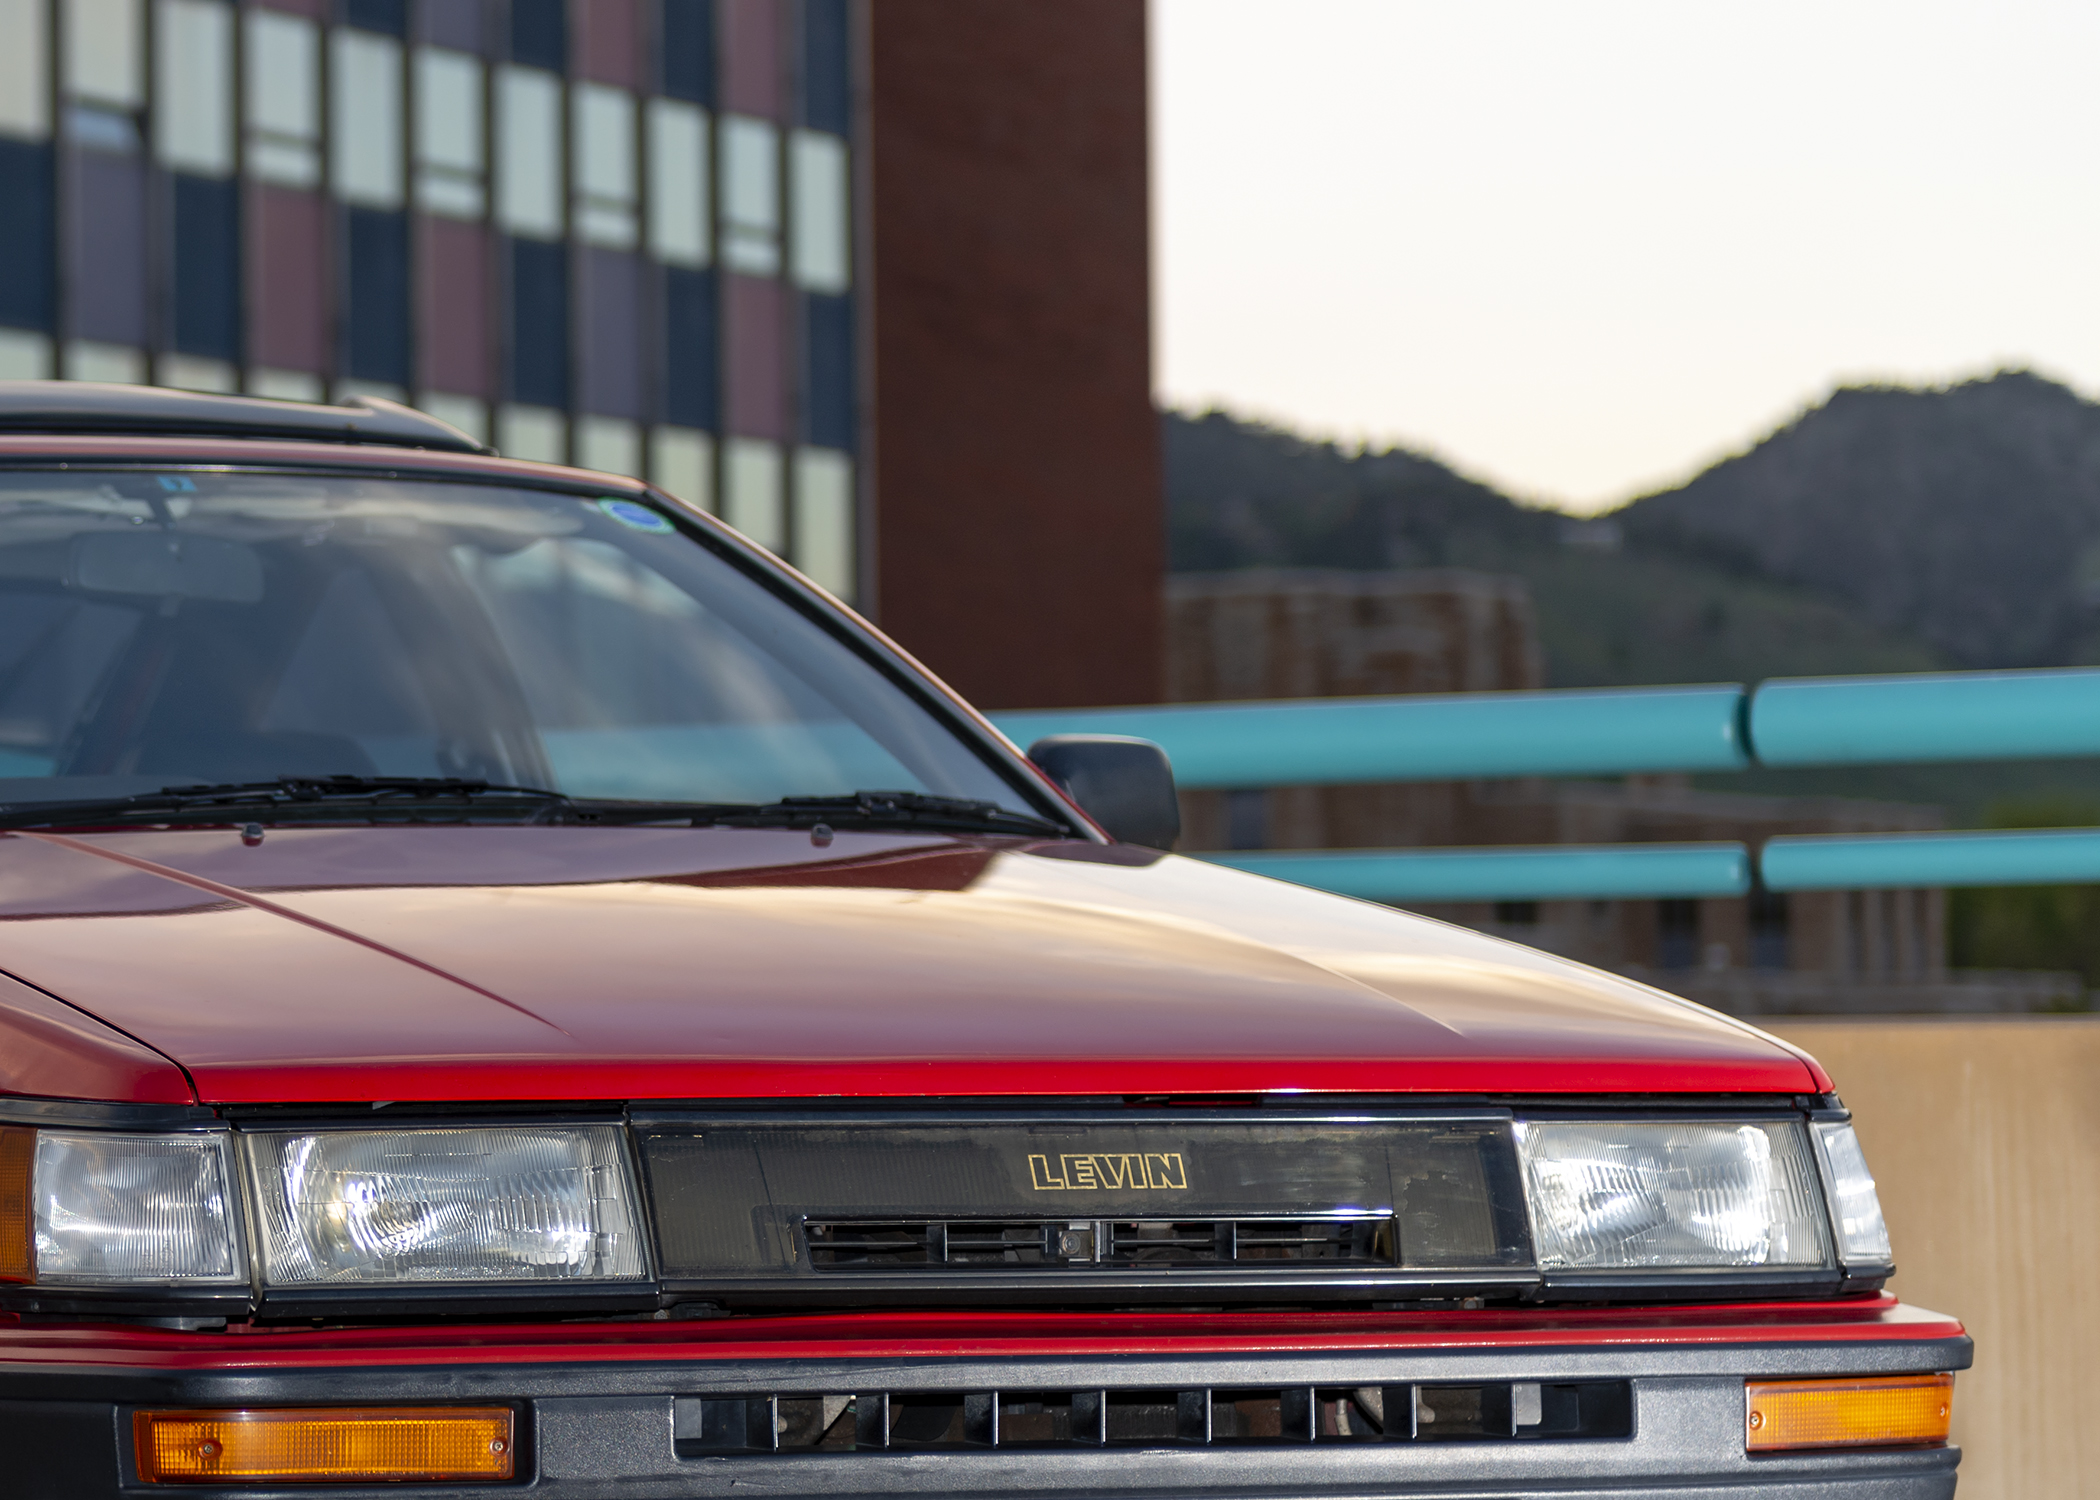 Nathan's Toyota Hachi Roku (86 in Japanese) that he imported from Japan.